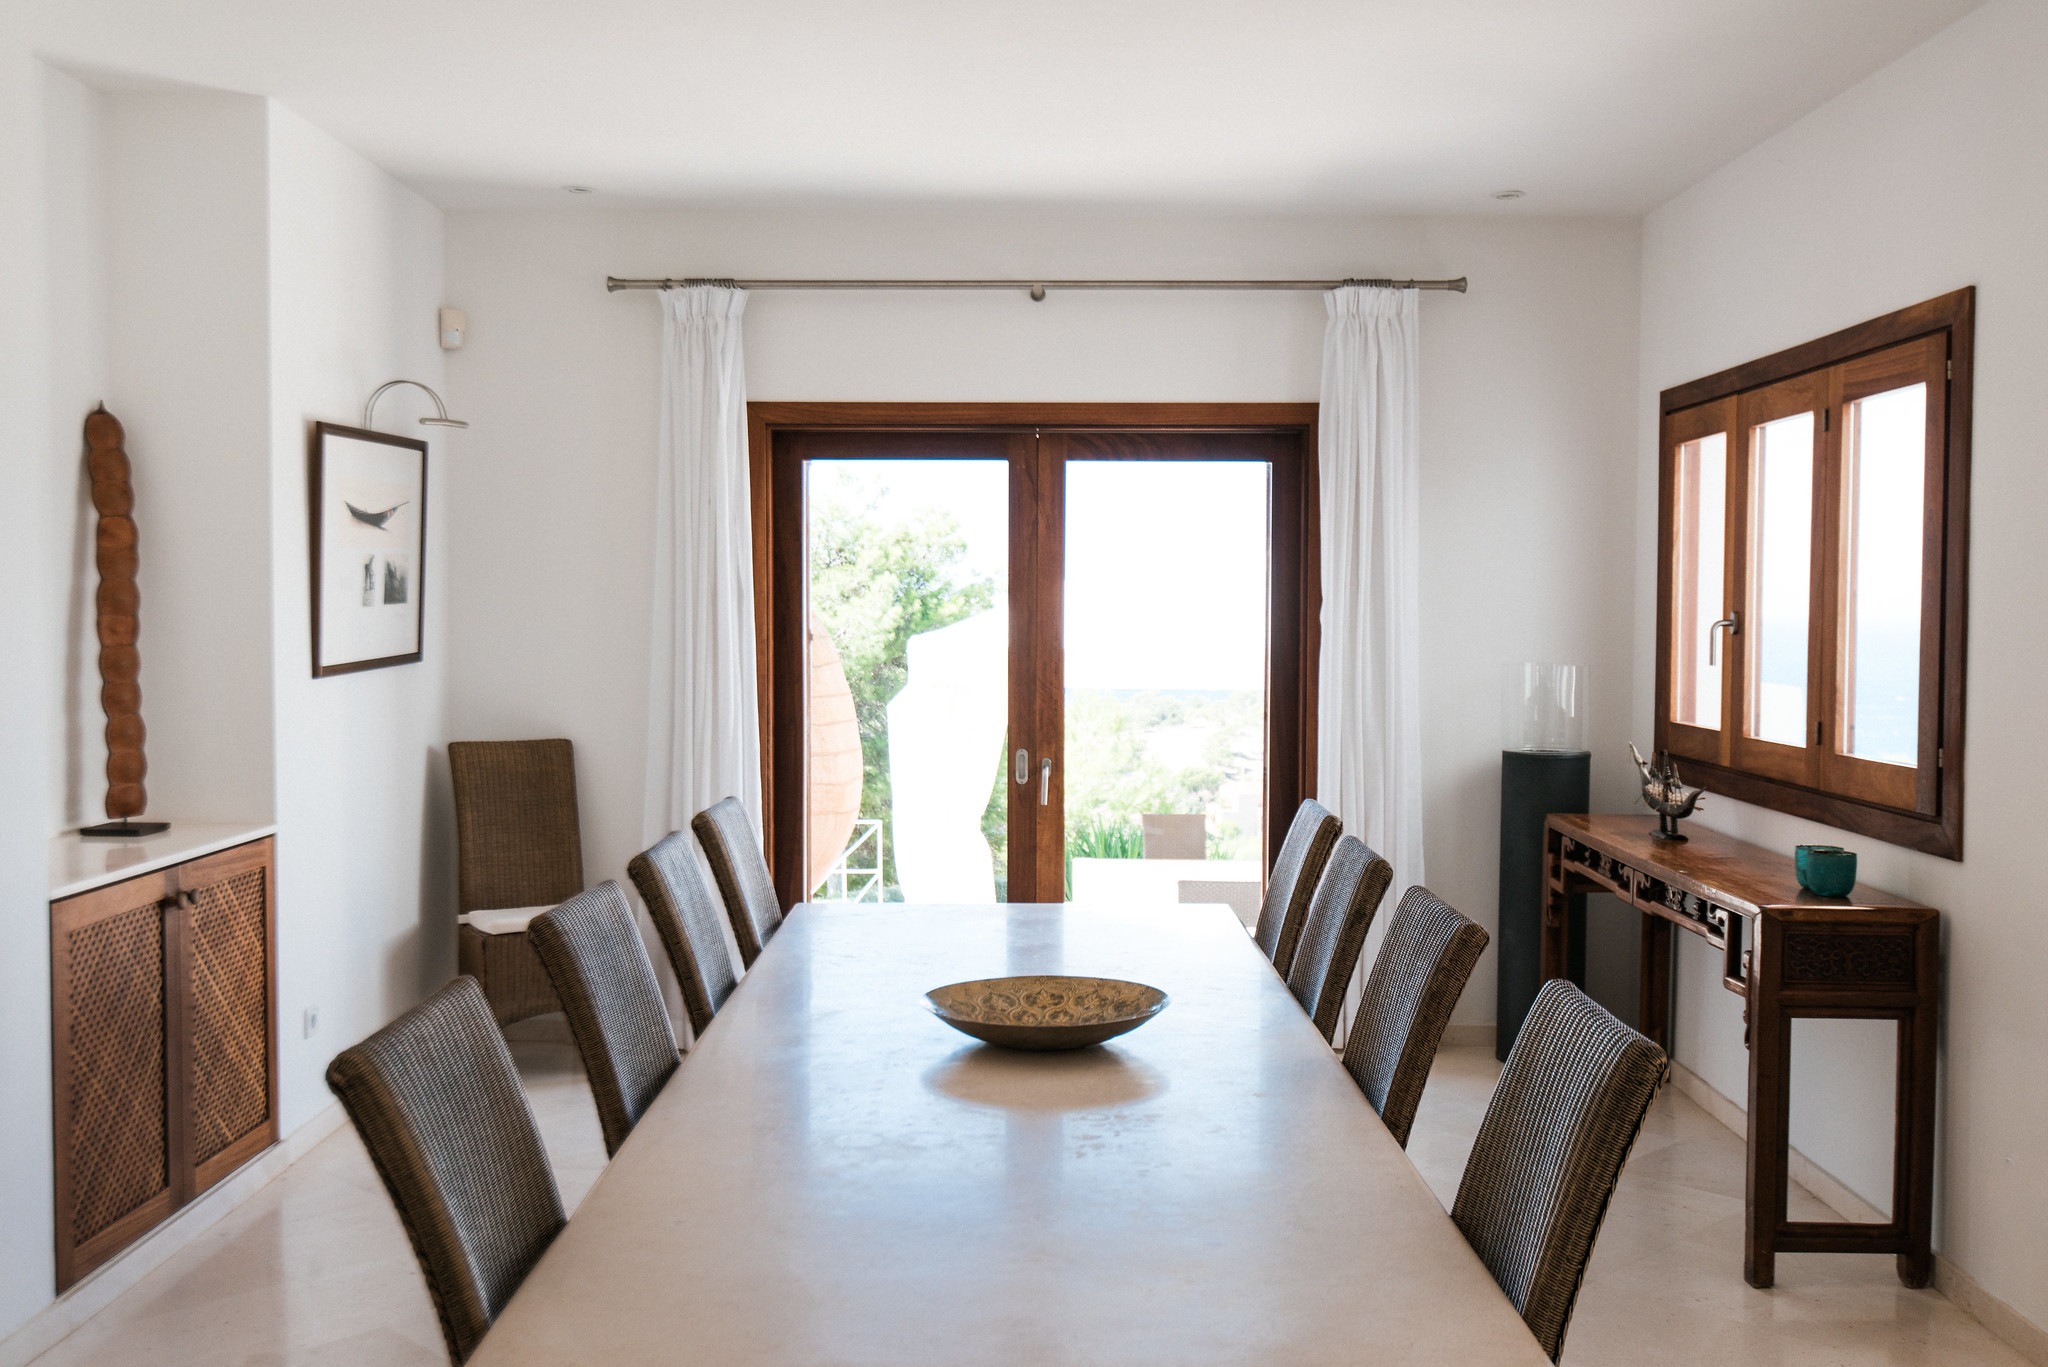 https://www.white-ibiza.com/wp-content/uploads/2020/05/white-ibiza-villas-can-ava-inside-dining.jpg